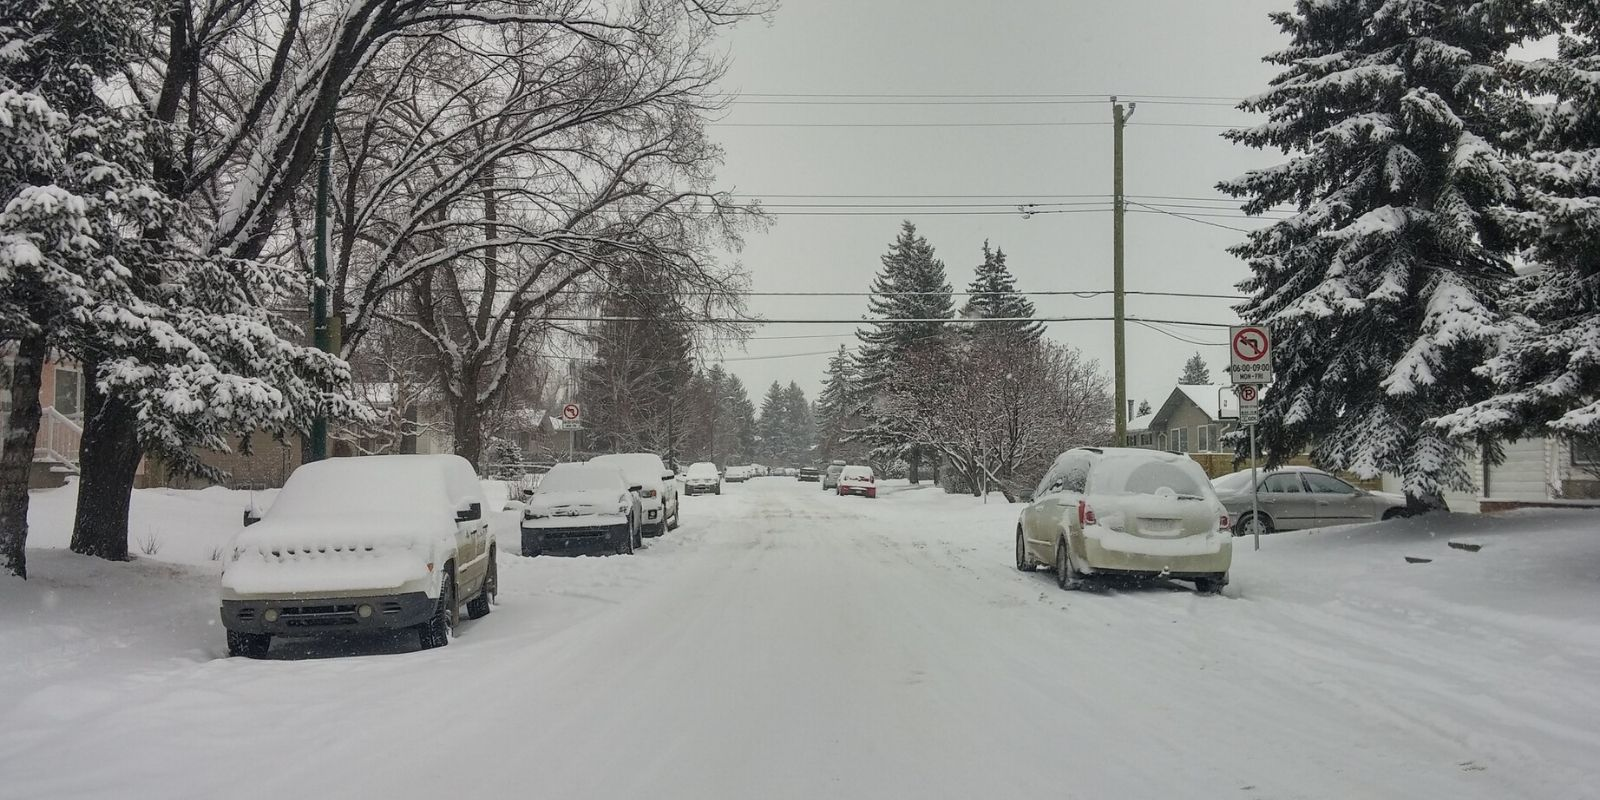 Southern Alberta pummeled by 20 cm of snow